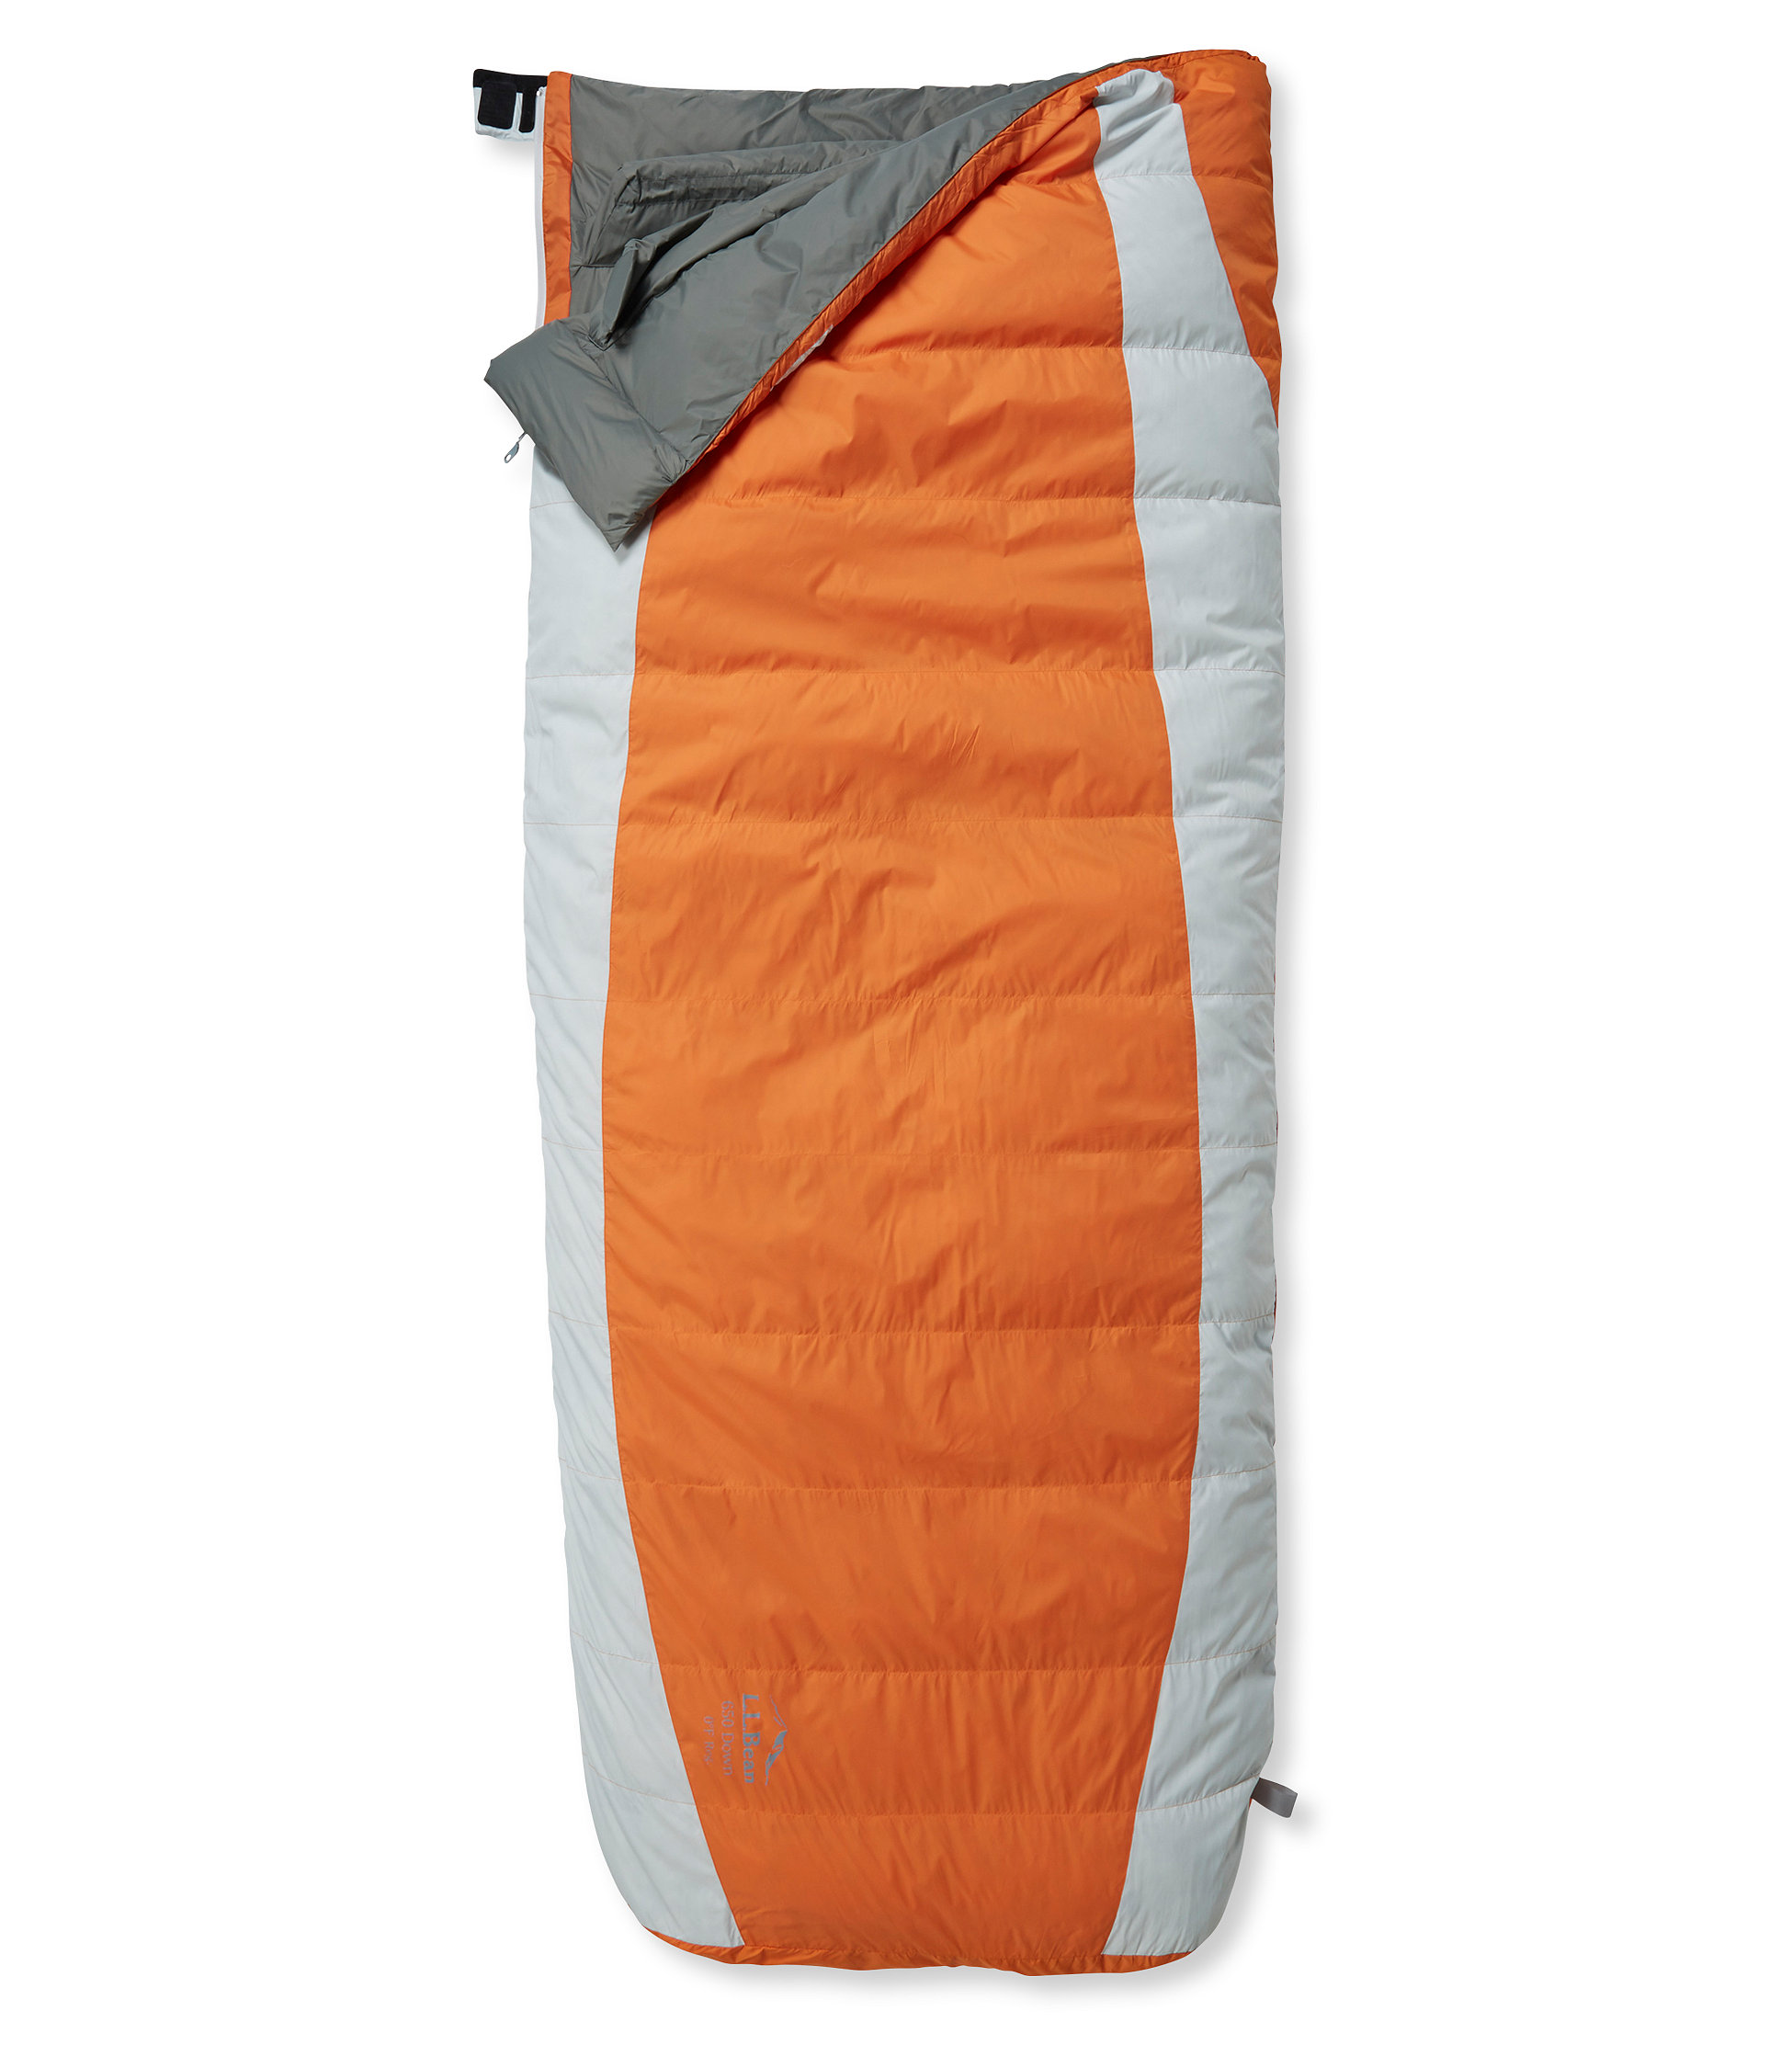 L.L.Bean Down Sleeping Bag with DownTek, Rectangular 0°